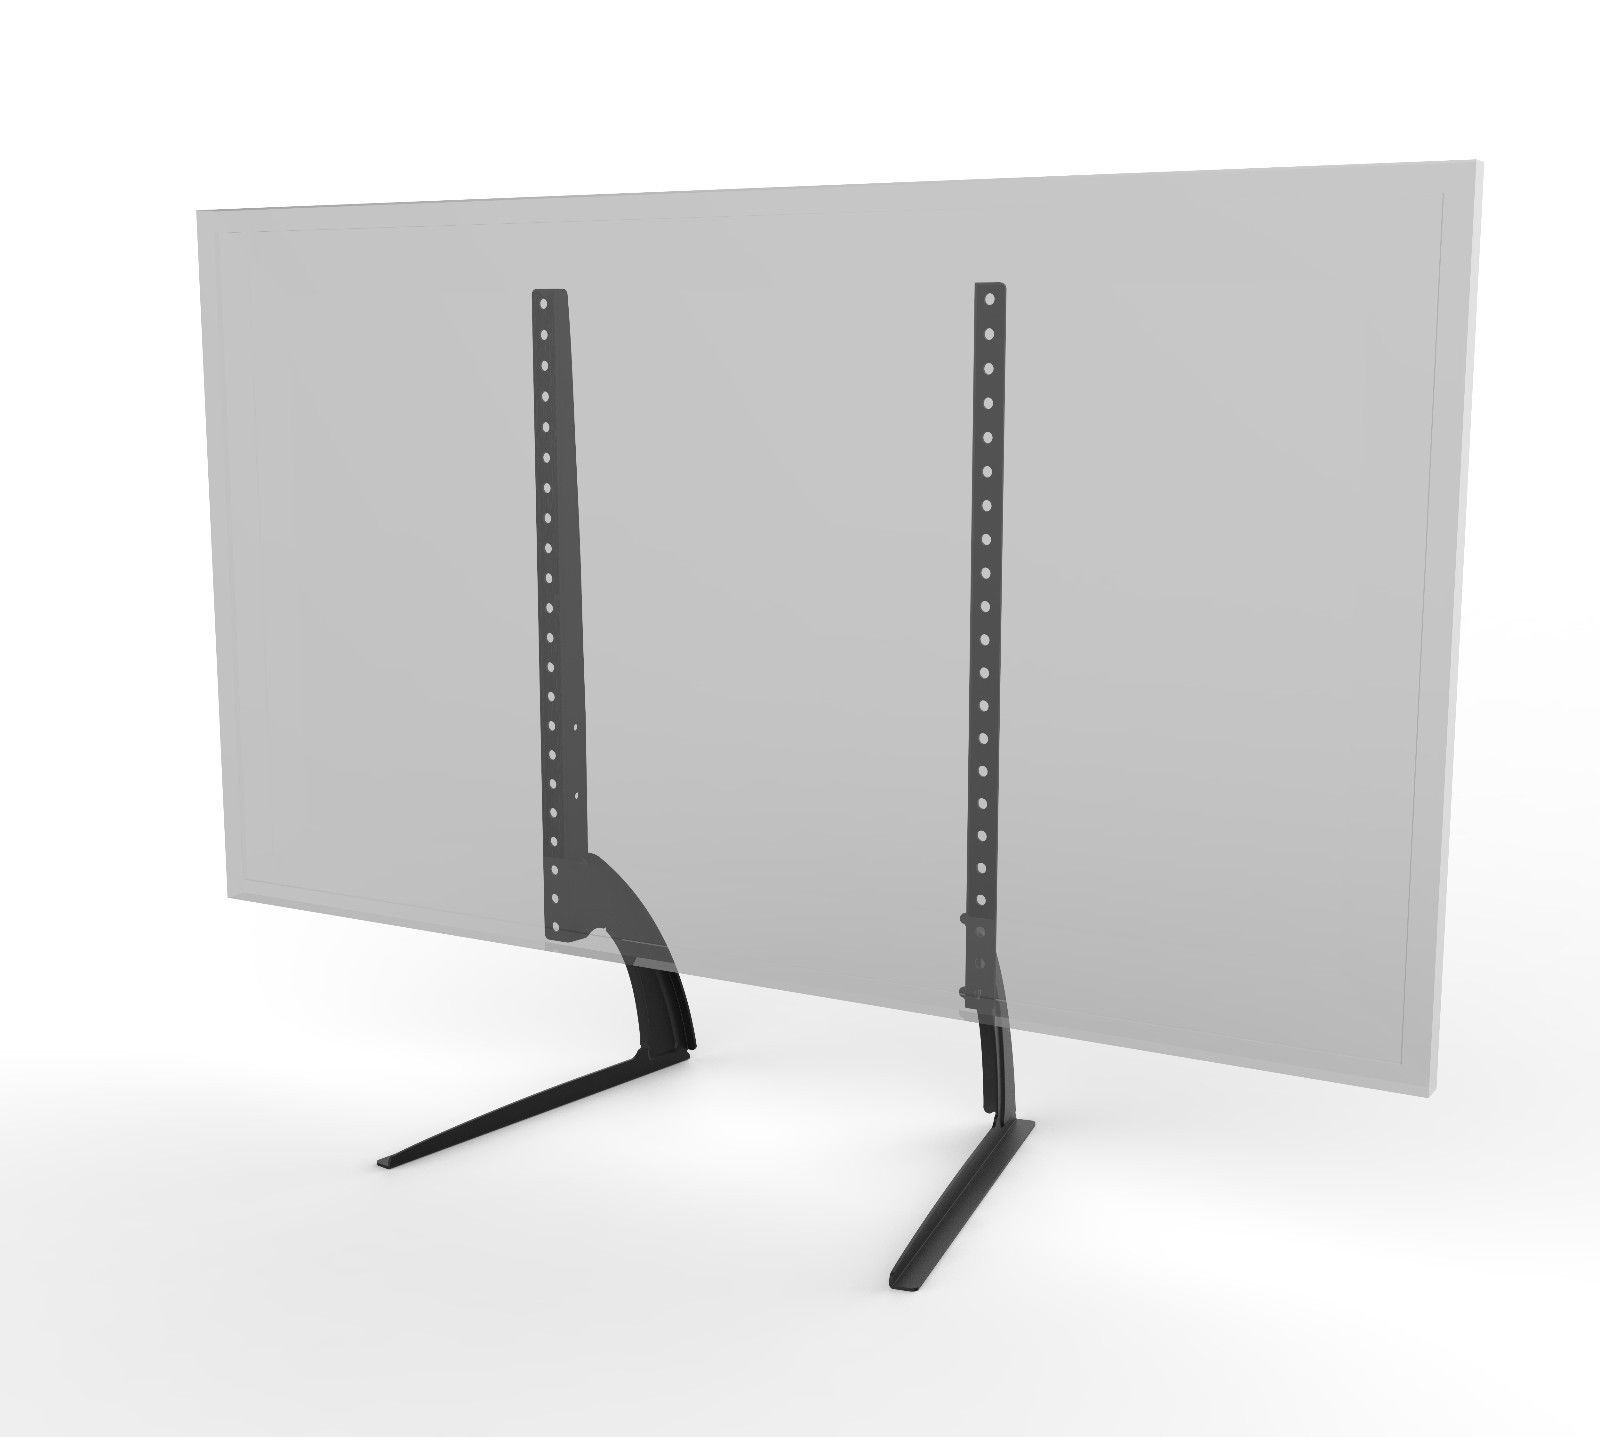 Universal Table Top TV Stand Legs for LG 60LN5400 Height Adjustable